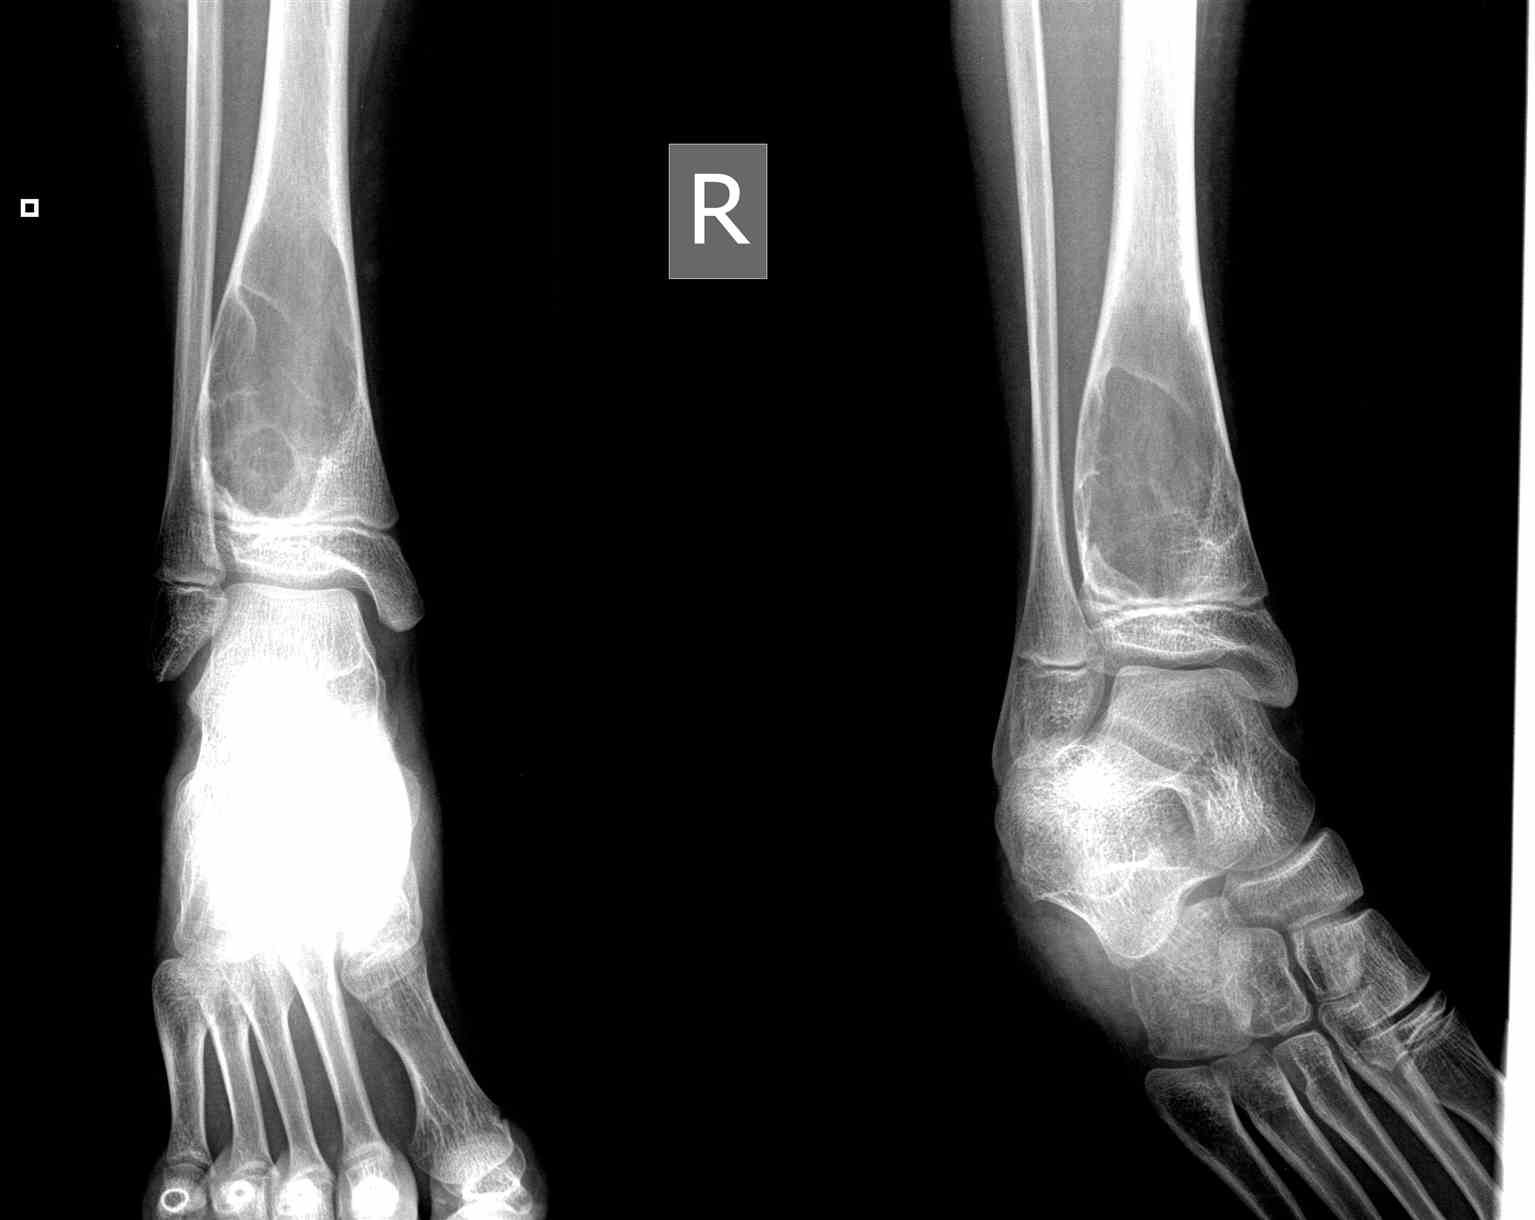 Radiograph Ankle ABC Aneurysmal Bone Cyst  Well Defined Expansile Lytic Lesion in Child with Internal Septations